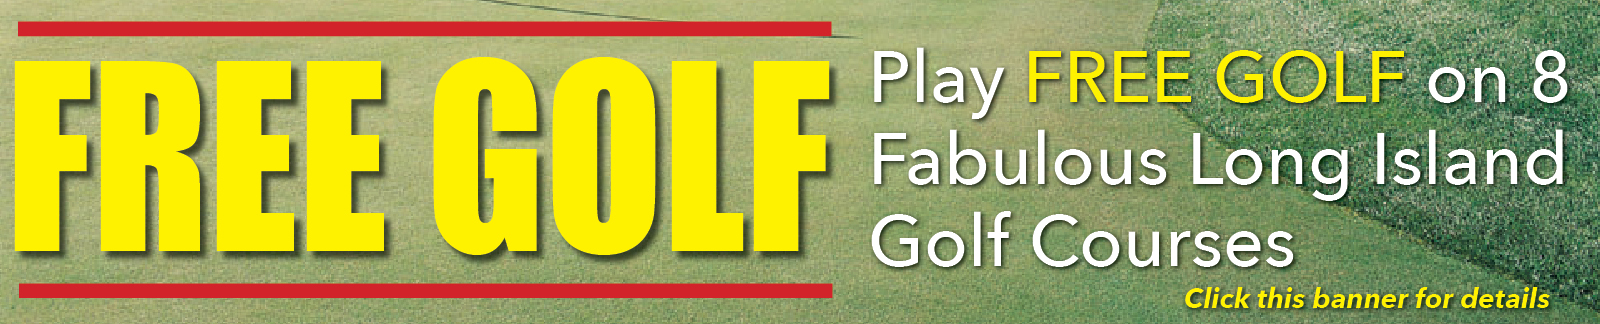 Play Free Golf Banner - Grass backround-PG